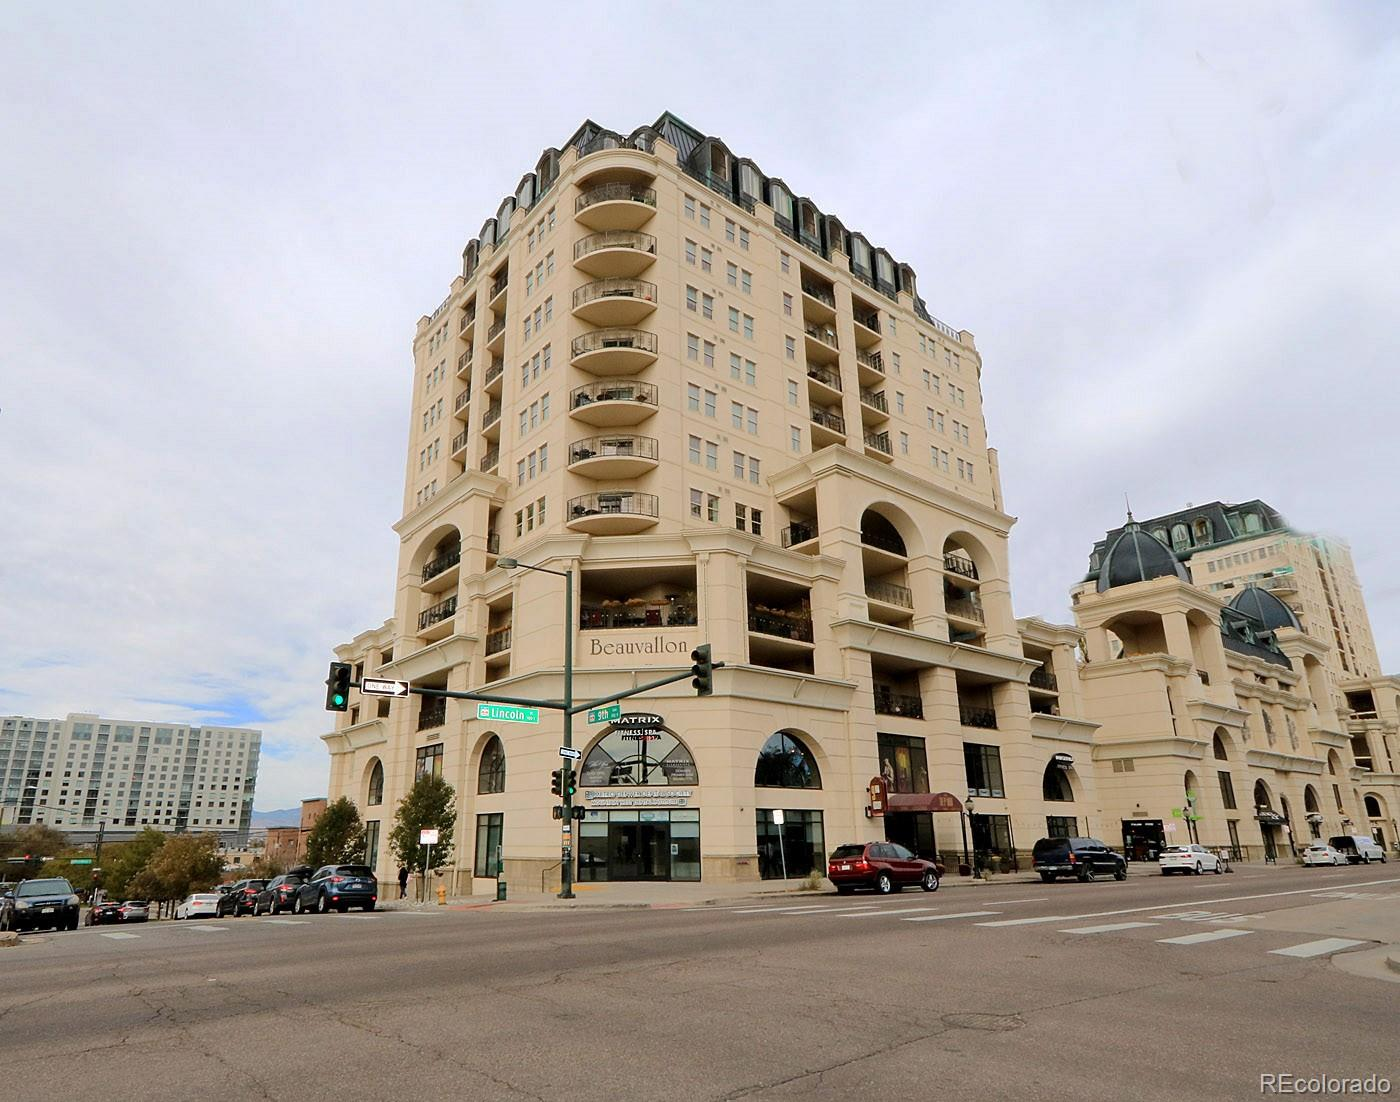 Pride of ownership shows throughout this spacious corner unit with two large  private balconies.  There is new high quality wood flooring in the entryway, kitchen, living room and dining areas.  Both bedrooms have new carpets and  ample closet space.  The master bath has dual sinks, granite counter top, tile flooring and a jetted tub with shower.  There are custom window coverings in the master and living areas.  The kitchen is stylish with granite counters, new stainless appliances and an upgraded fridge with a programmable water dispenser.  Seller installed a new Honeywell T-5 Thermostat which can be controlled from your phone.  This luxury building has seasonal pool, year round hot tub, grills, garden and dining areas on the 5th floor.  Parking G-1 #164, Storage G2 #187, Bike G-1 storage.Please check in with concierge for lock box for Unit 9 I S.  Must present business card.  Fob will work for elevator and garage entrance.